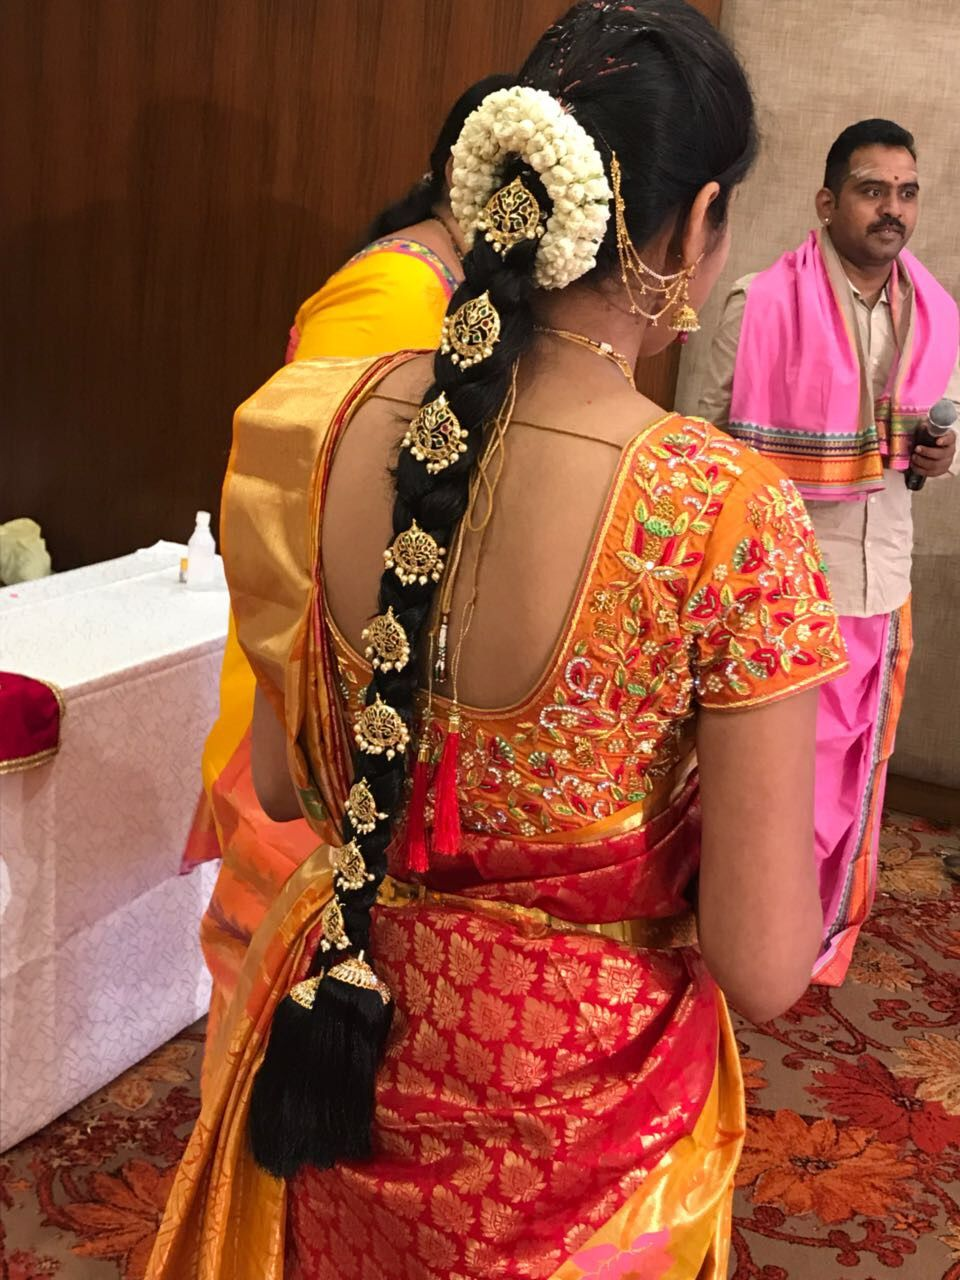 pin by swathi kommineni on wedding in 2019 | indian wedding